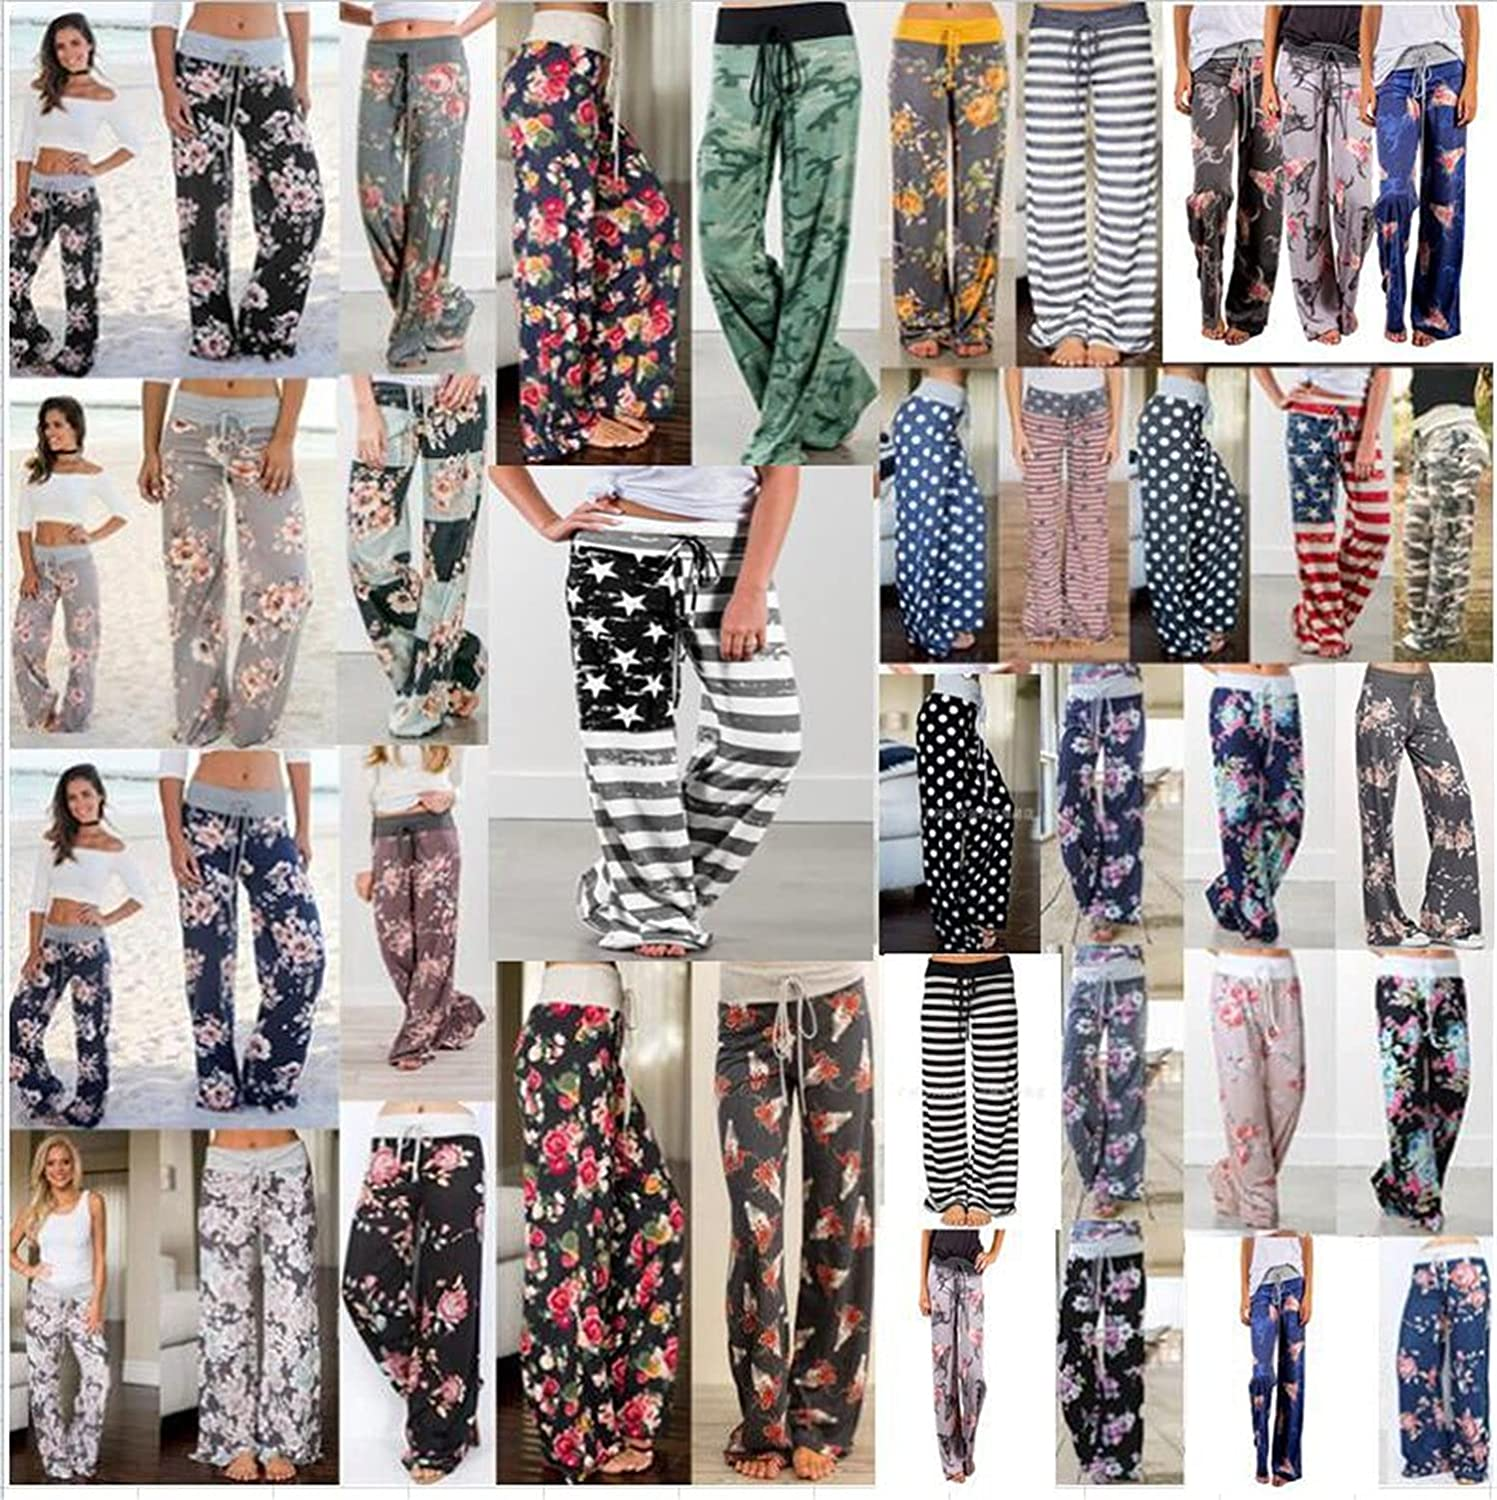 Women's Printed Wide-Leg Pants Comfy Stretch Floral Print Drawstring Lounge Trousers Casual Stretchy Casualpants (Large,Black 7)